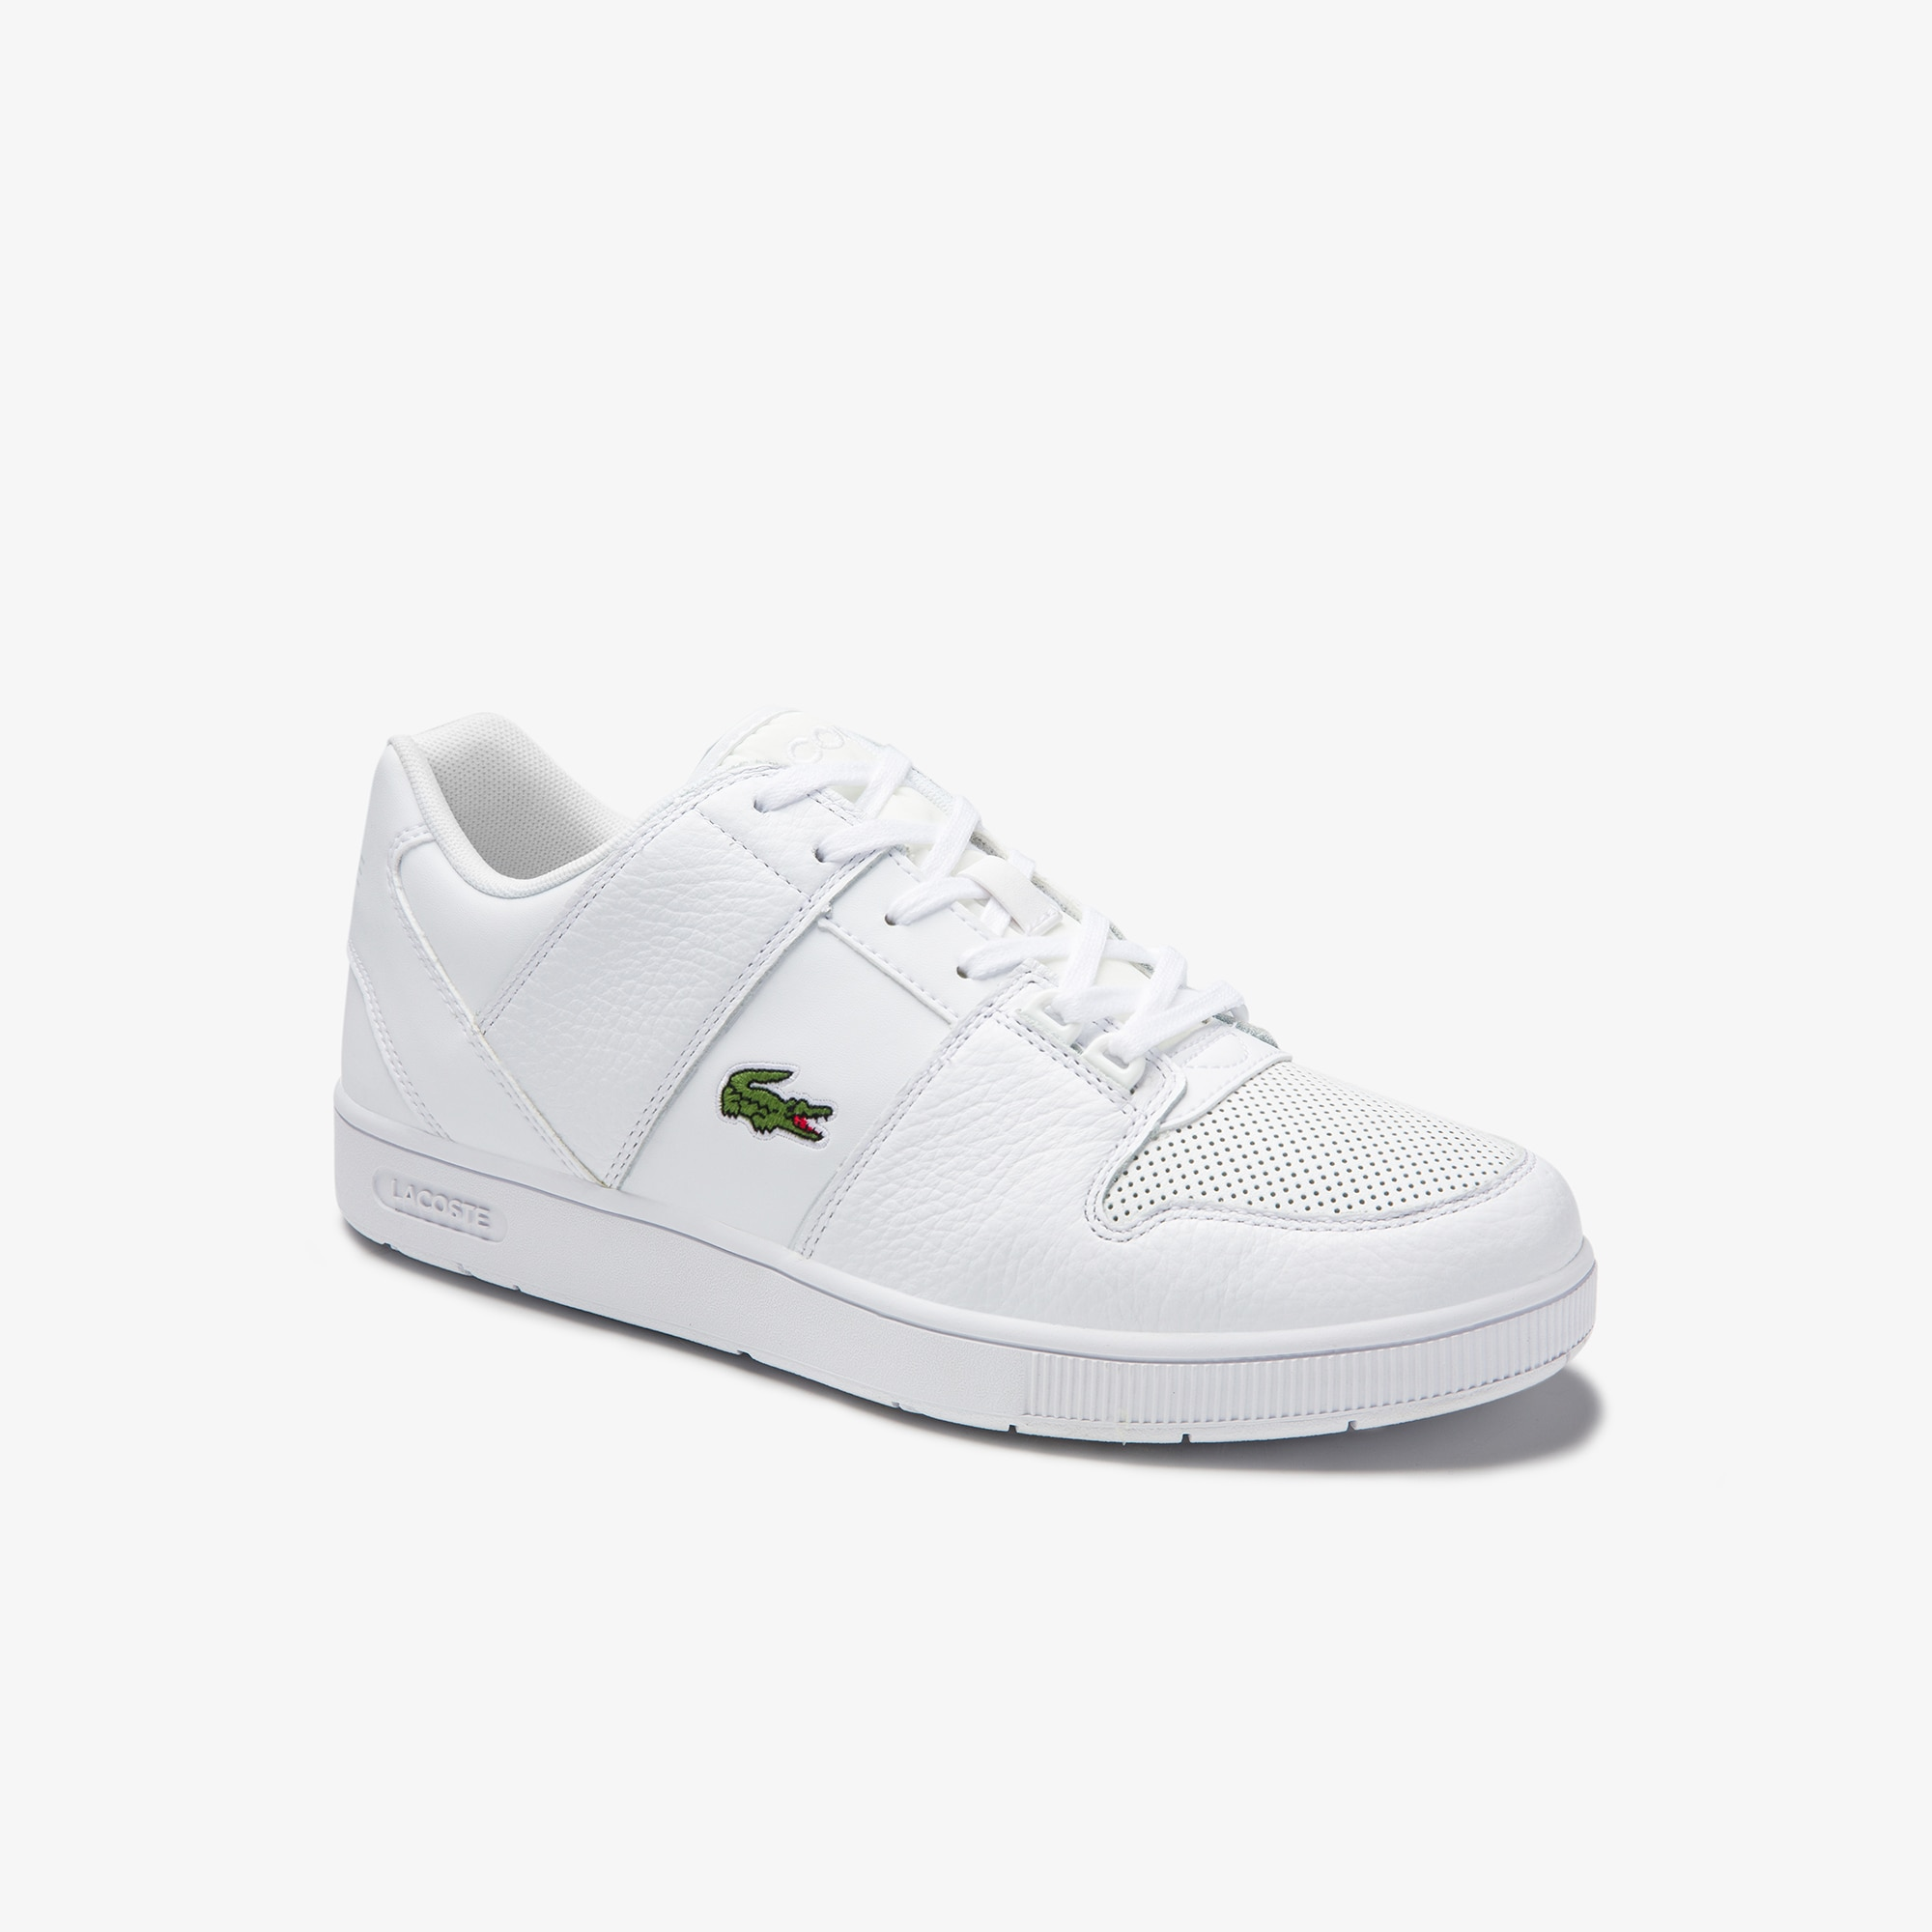 Men's casual and sports footwear